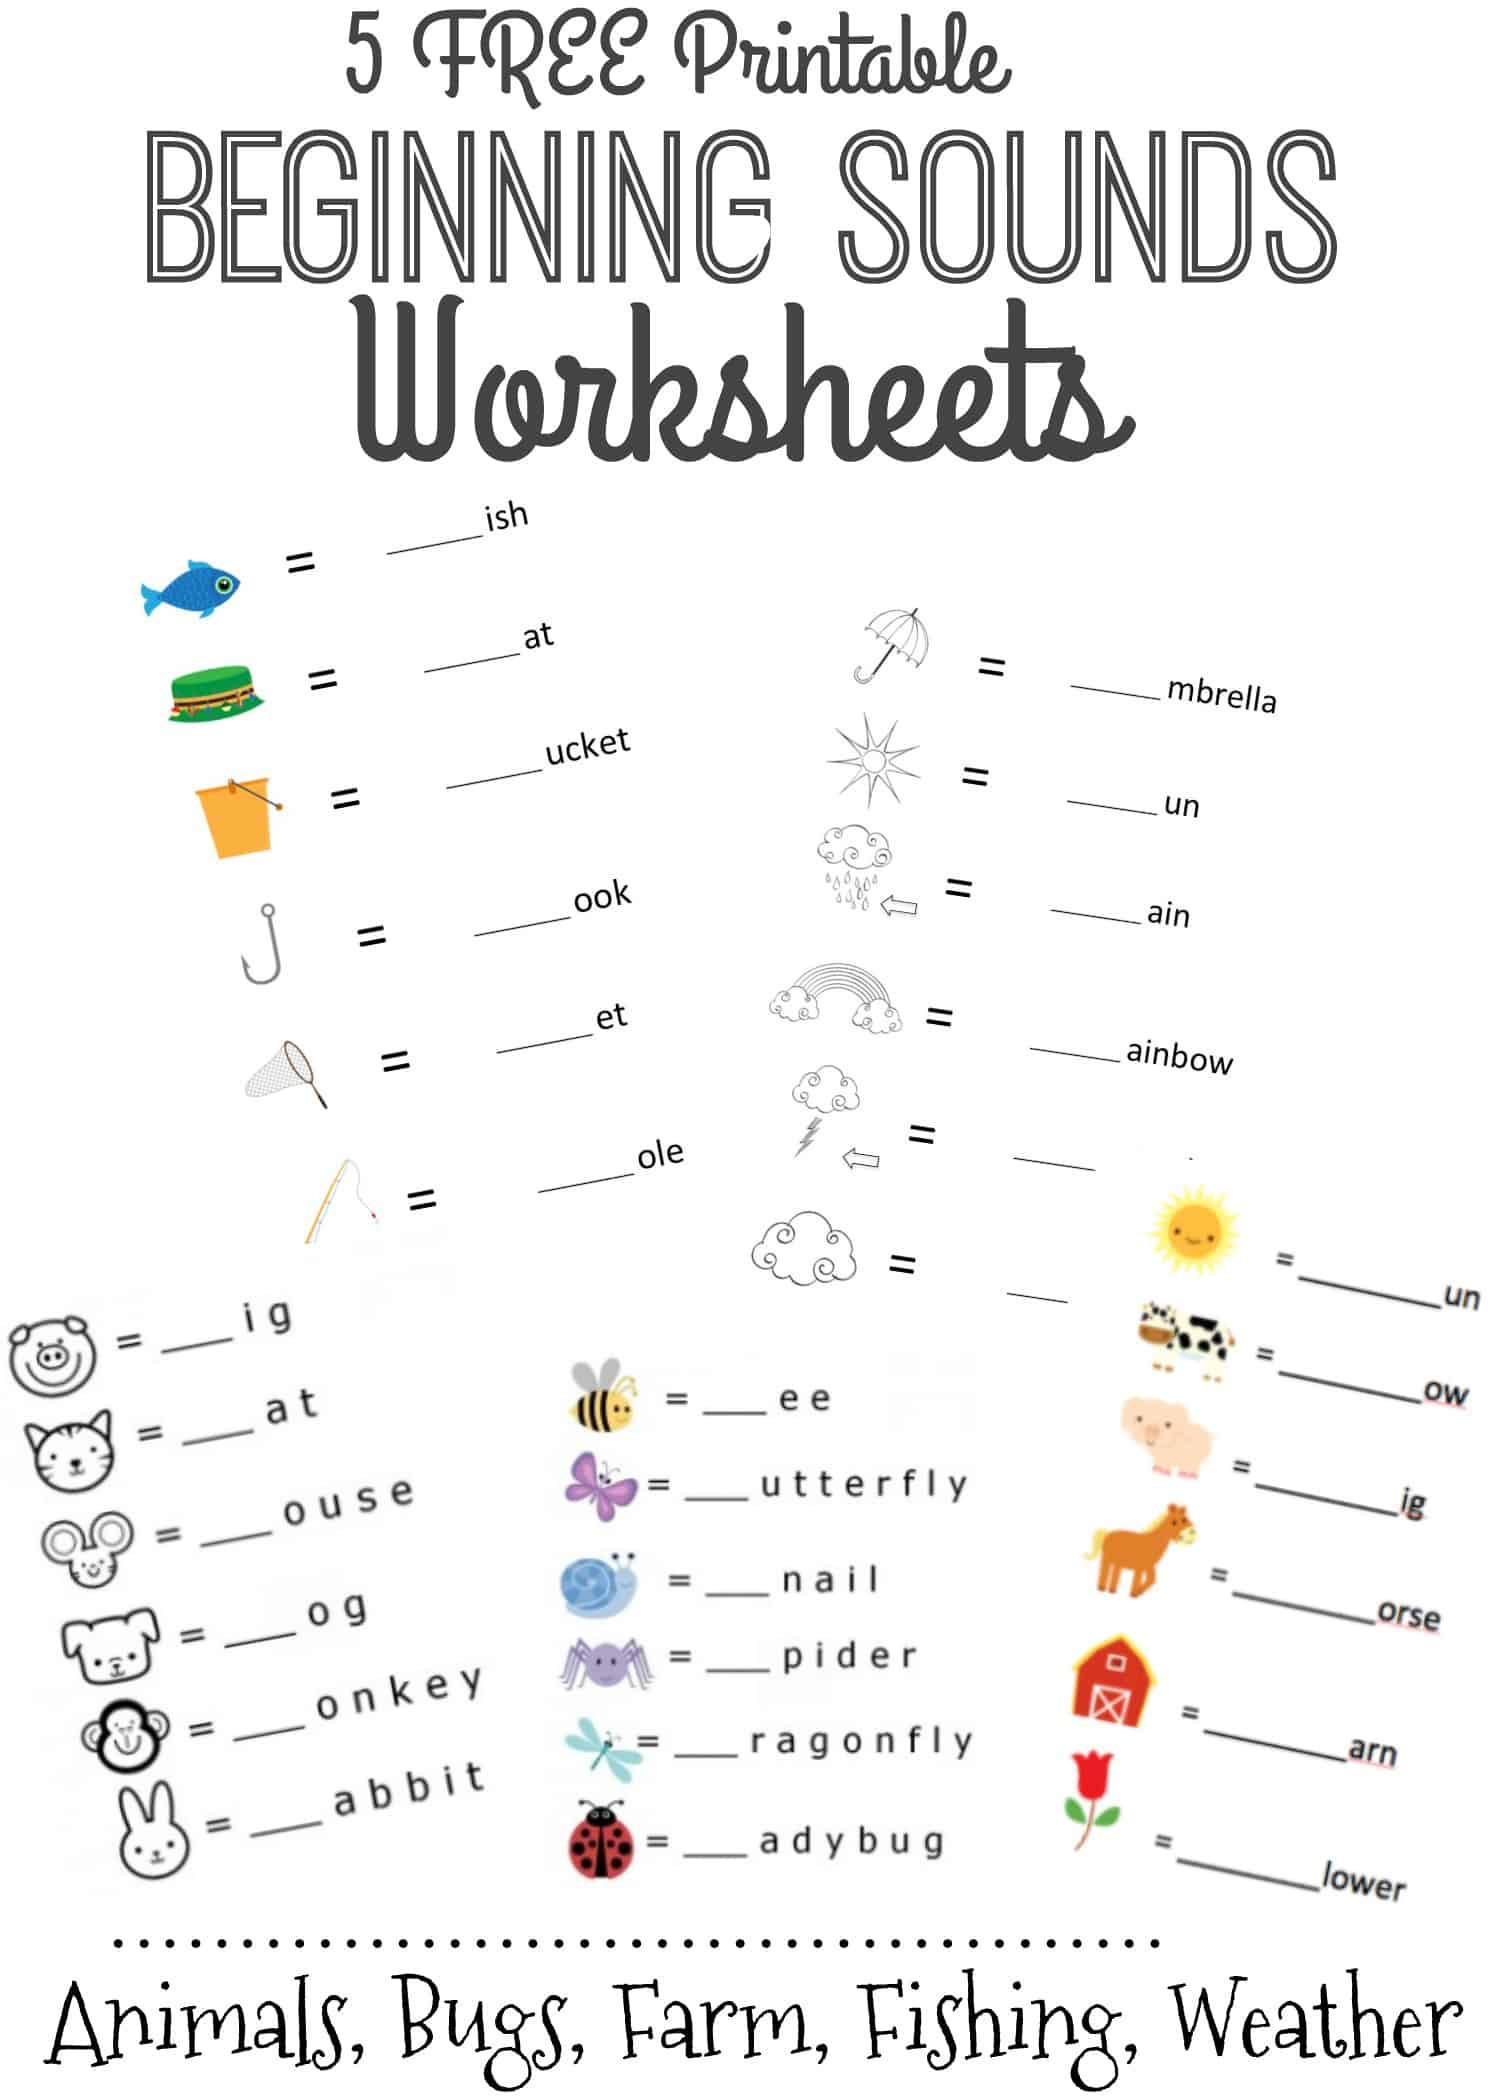 Typing Worksheets Printables Beginning sounds Letter Worksheets for Early Learners